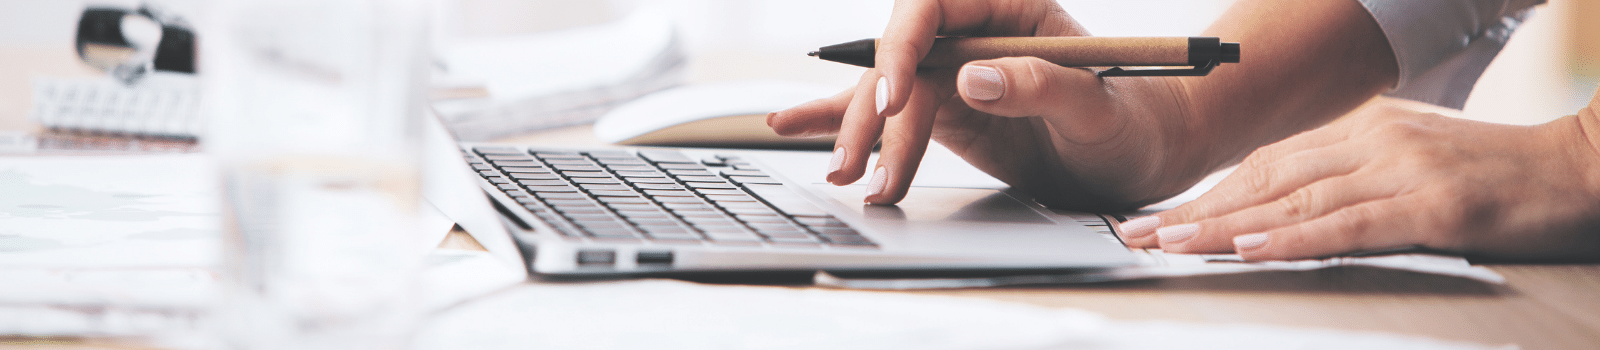 A woman holding a pen and typing on a laptop